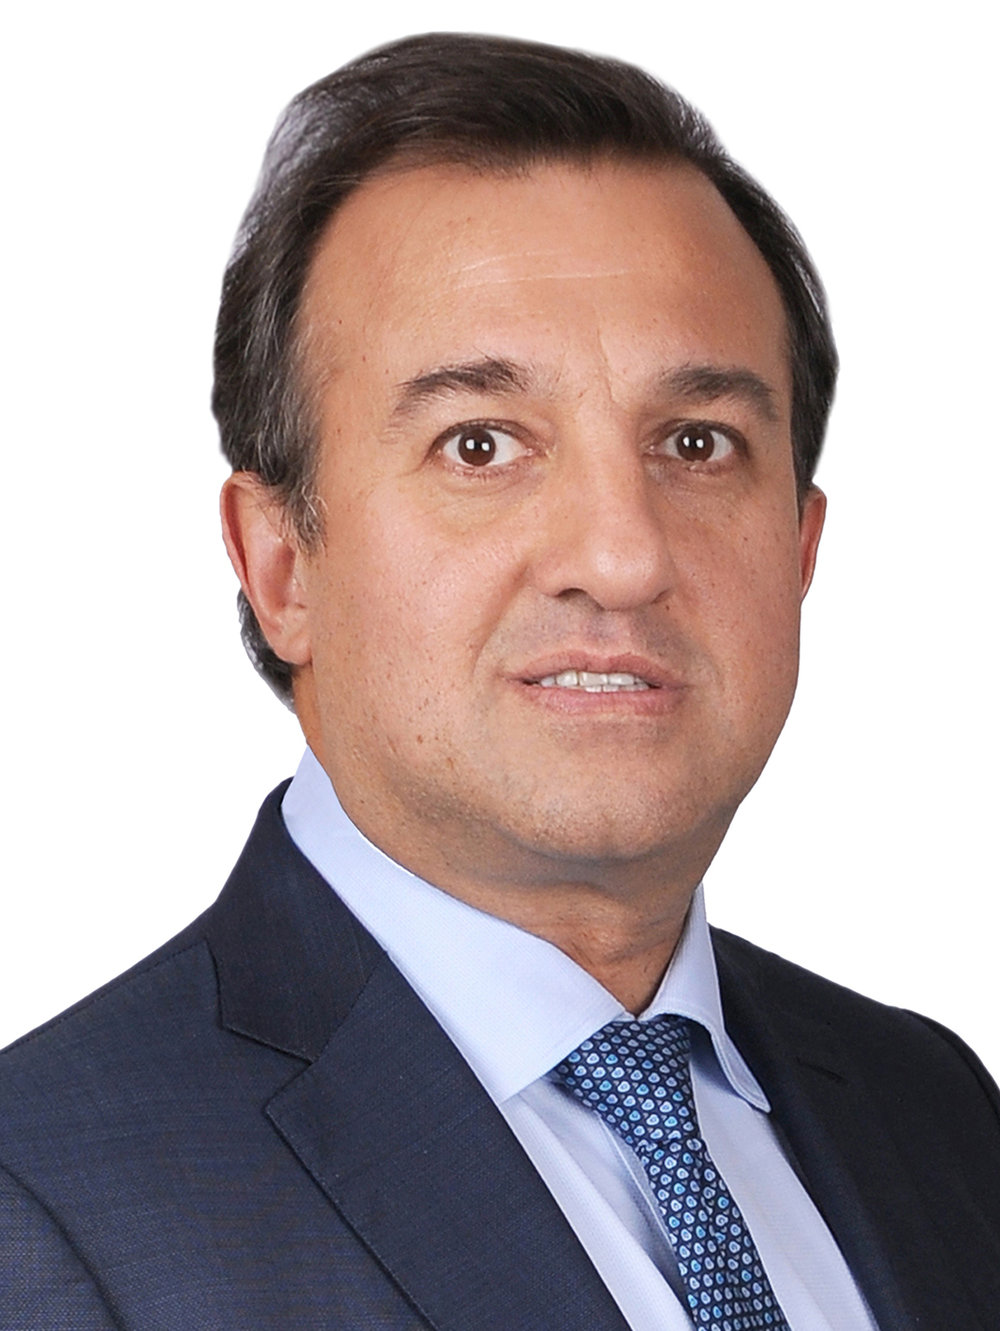 Jai Shroff   Jaidev (Jai) R. Shroff is the Global CEO of UPL Limited. He is a well-recognized global leader in the Agri-Inputs industry with over 28 years experience in India and internationally...   Read more ...